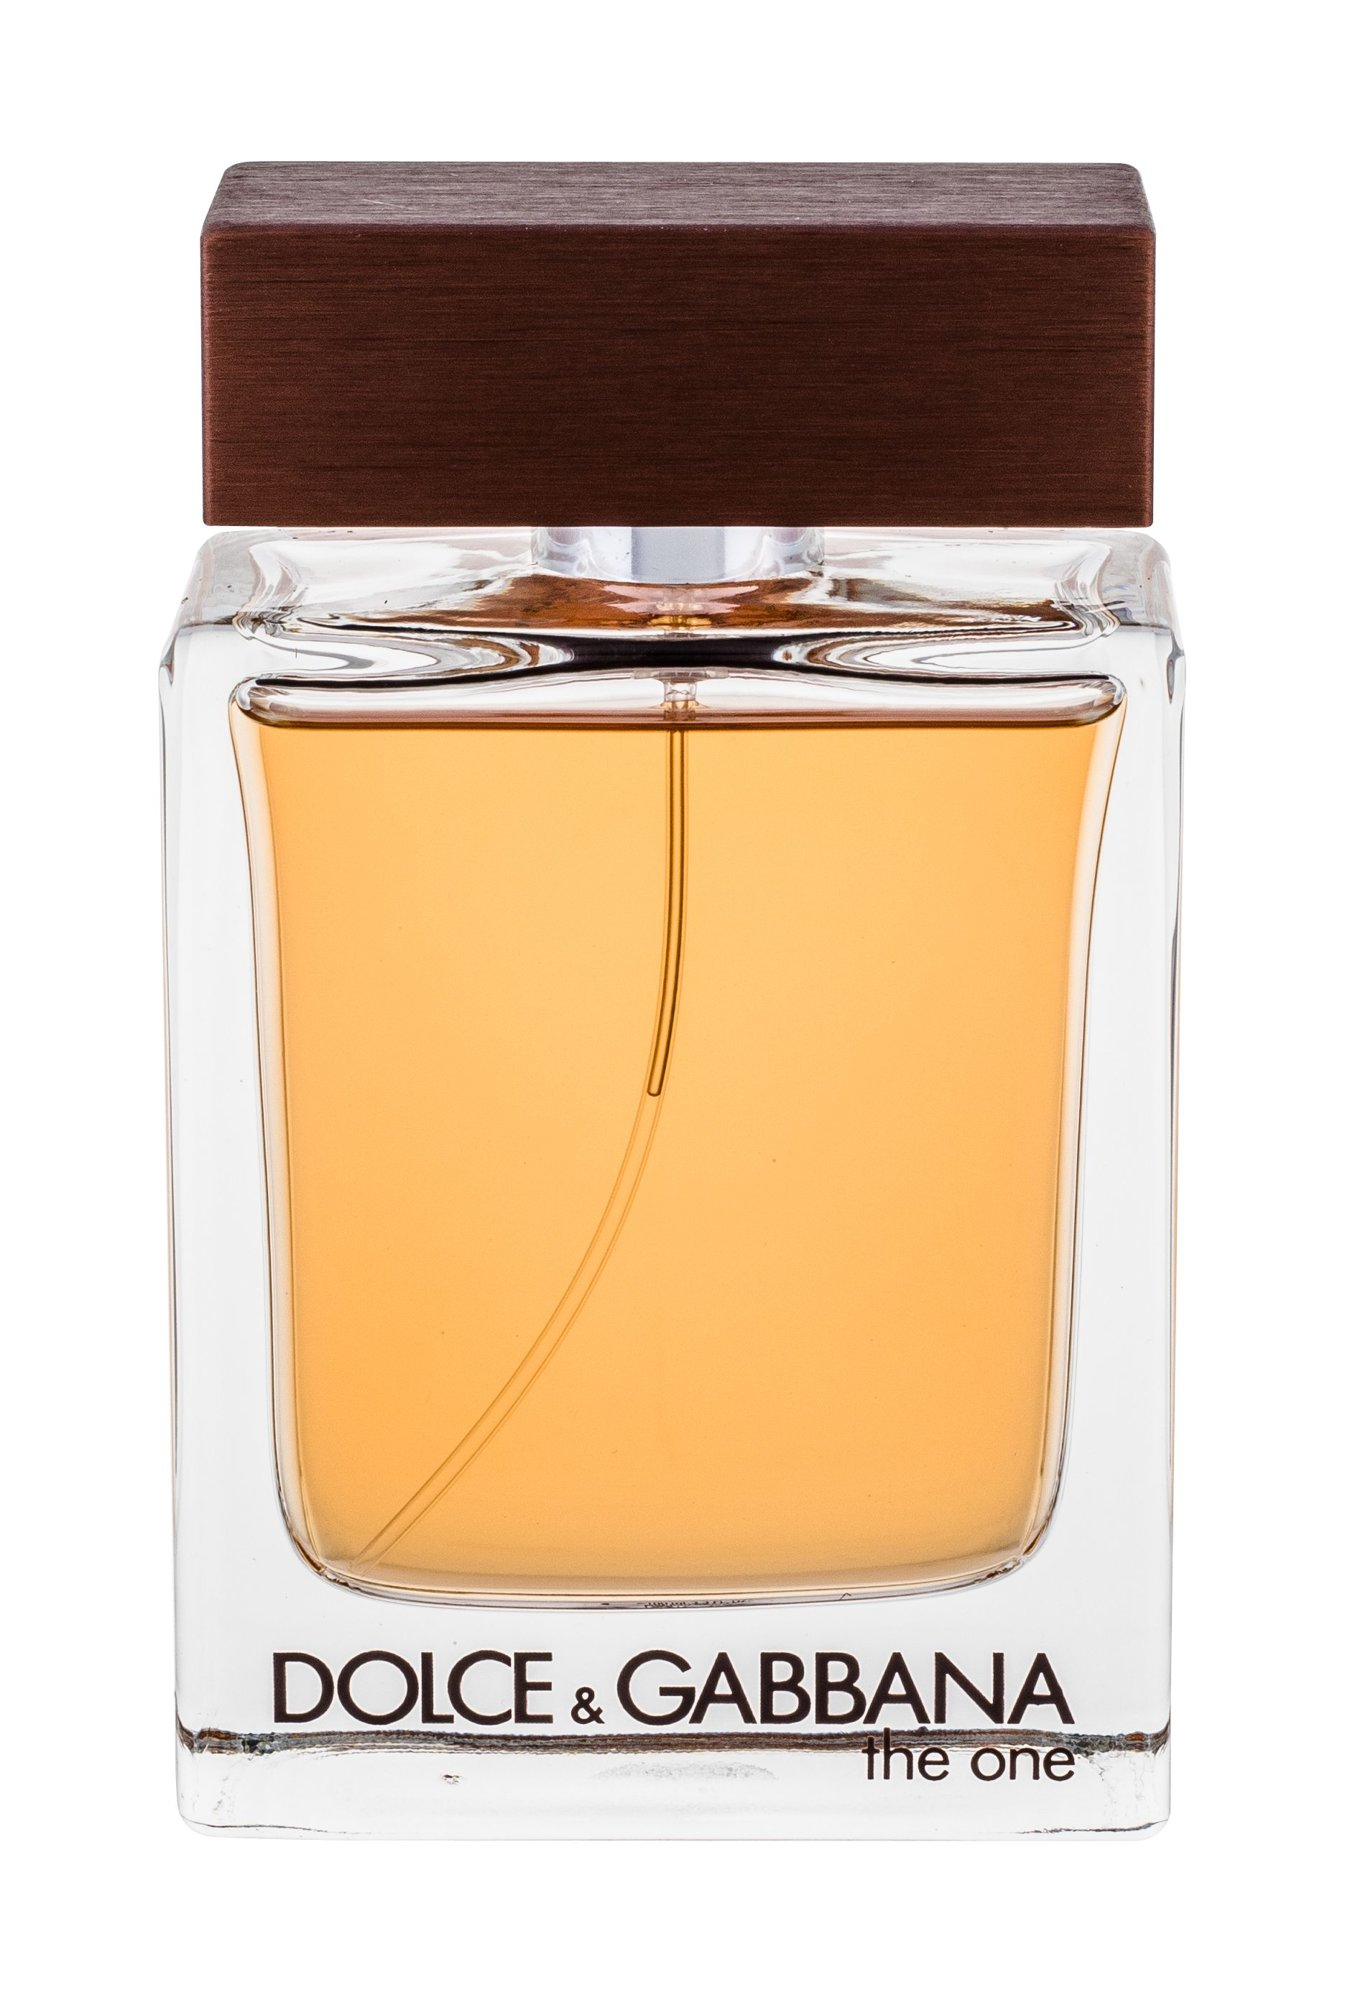 Dolce&Gabbana The One For Men Aftershave 100ml